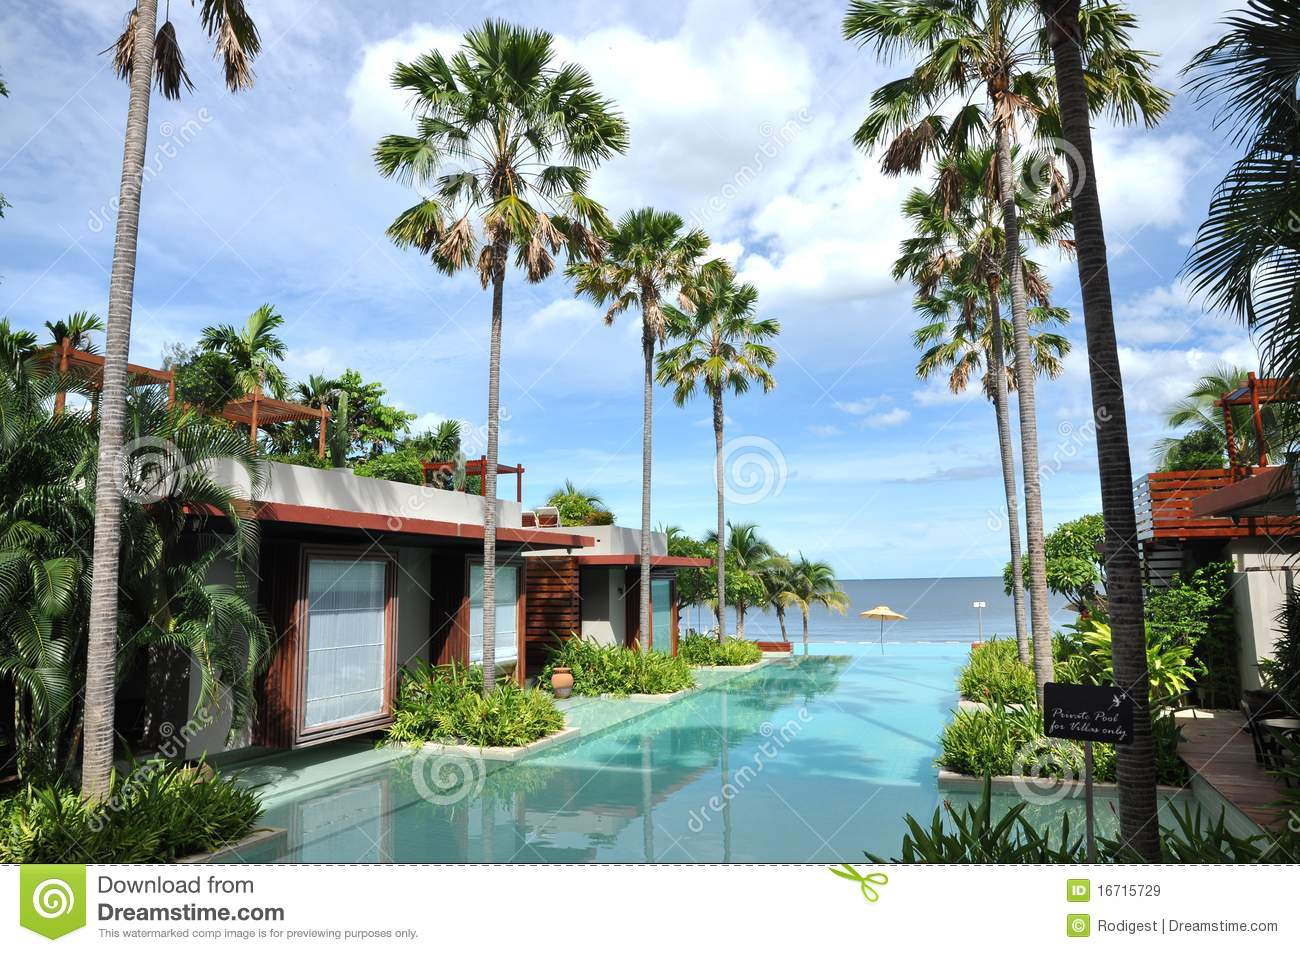 Sea palm tree resort swimming pool royalty free stock images image 16715729 for Best palm tree for swimming pool